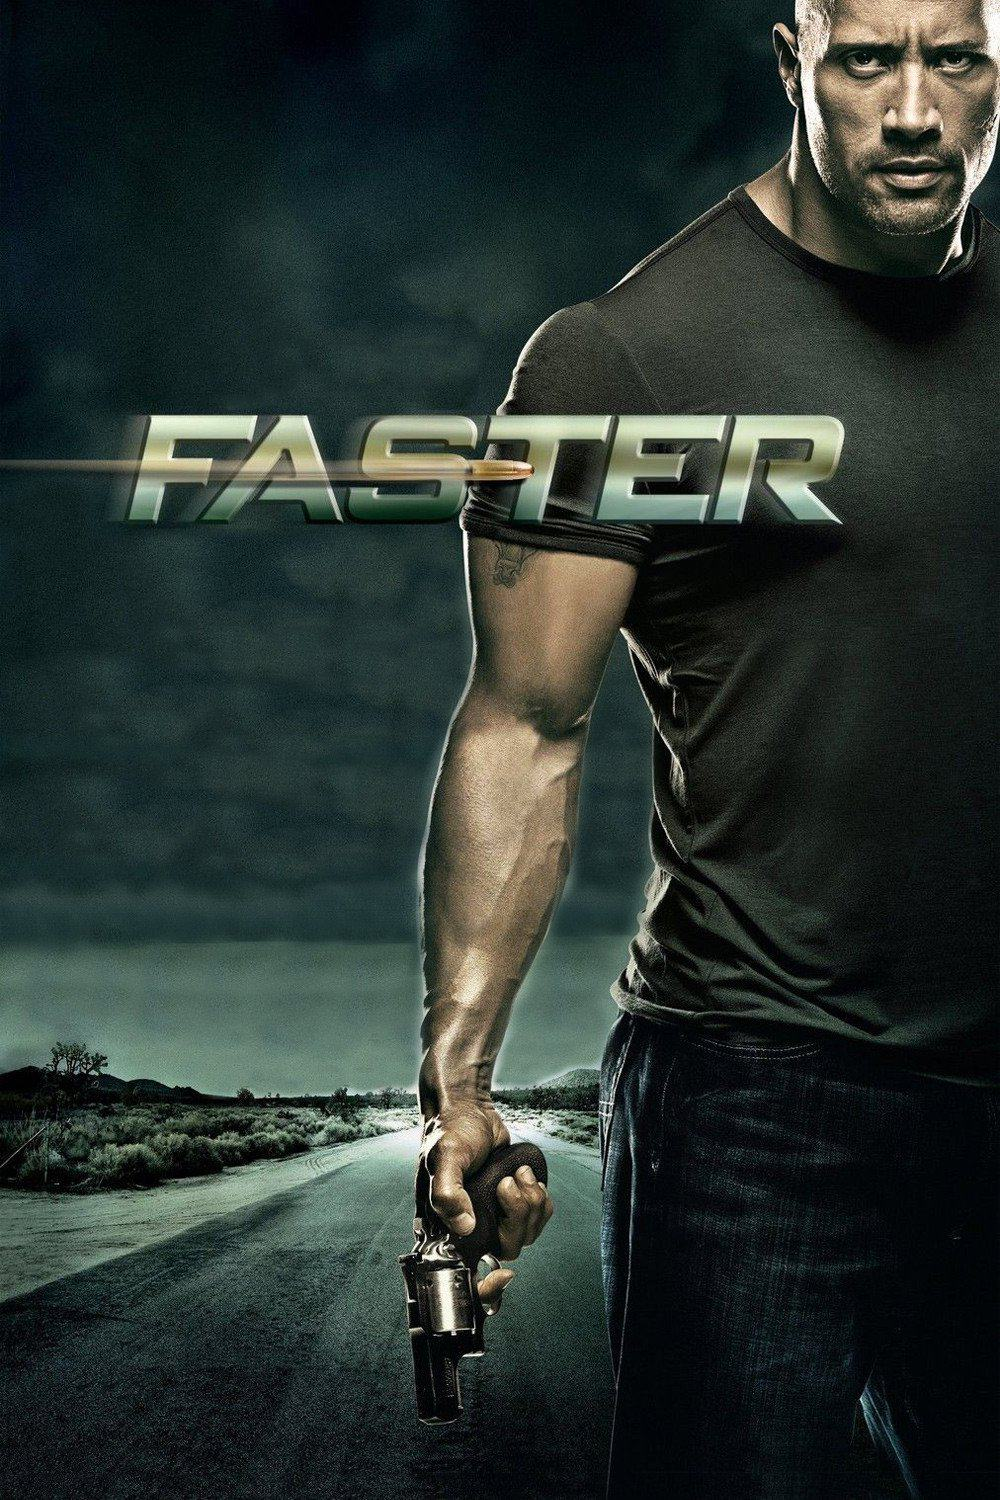 Faster, 2010